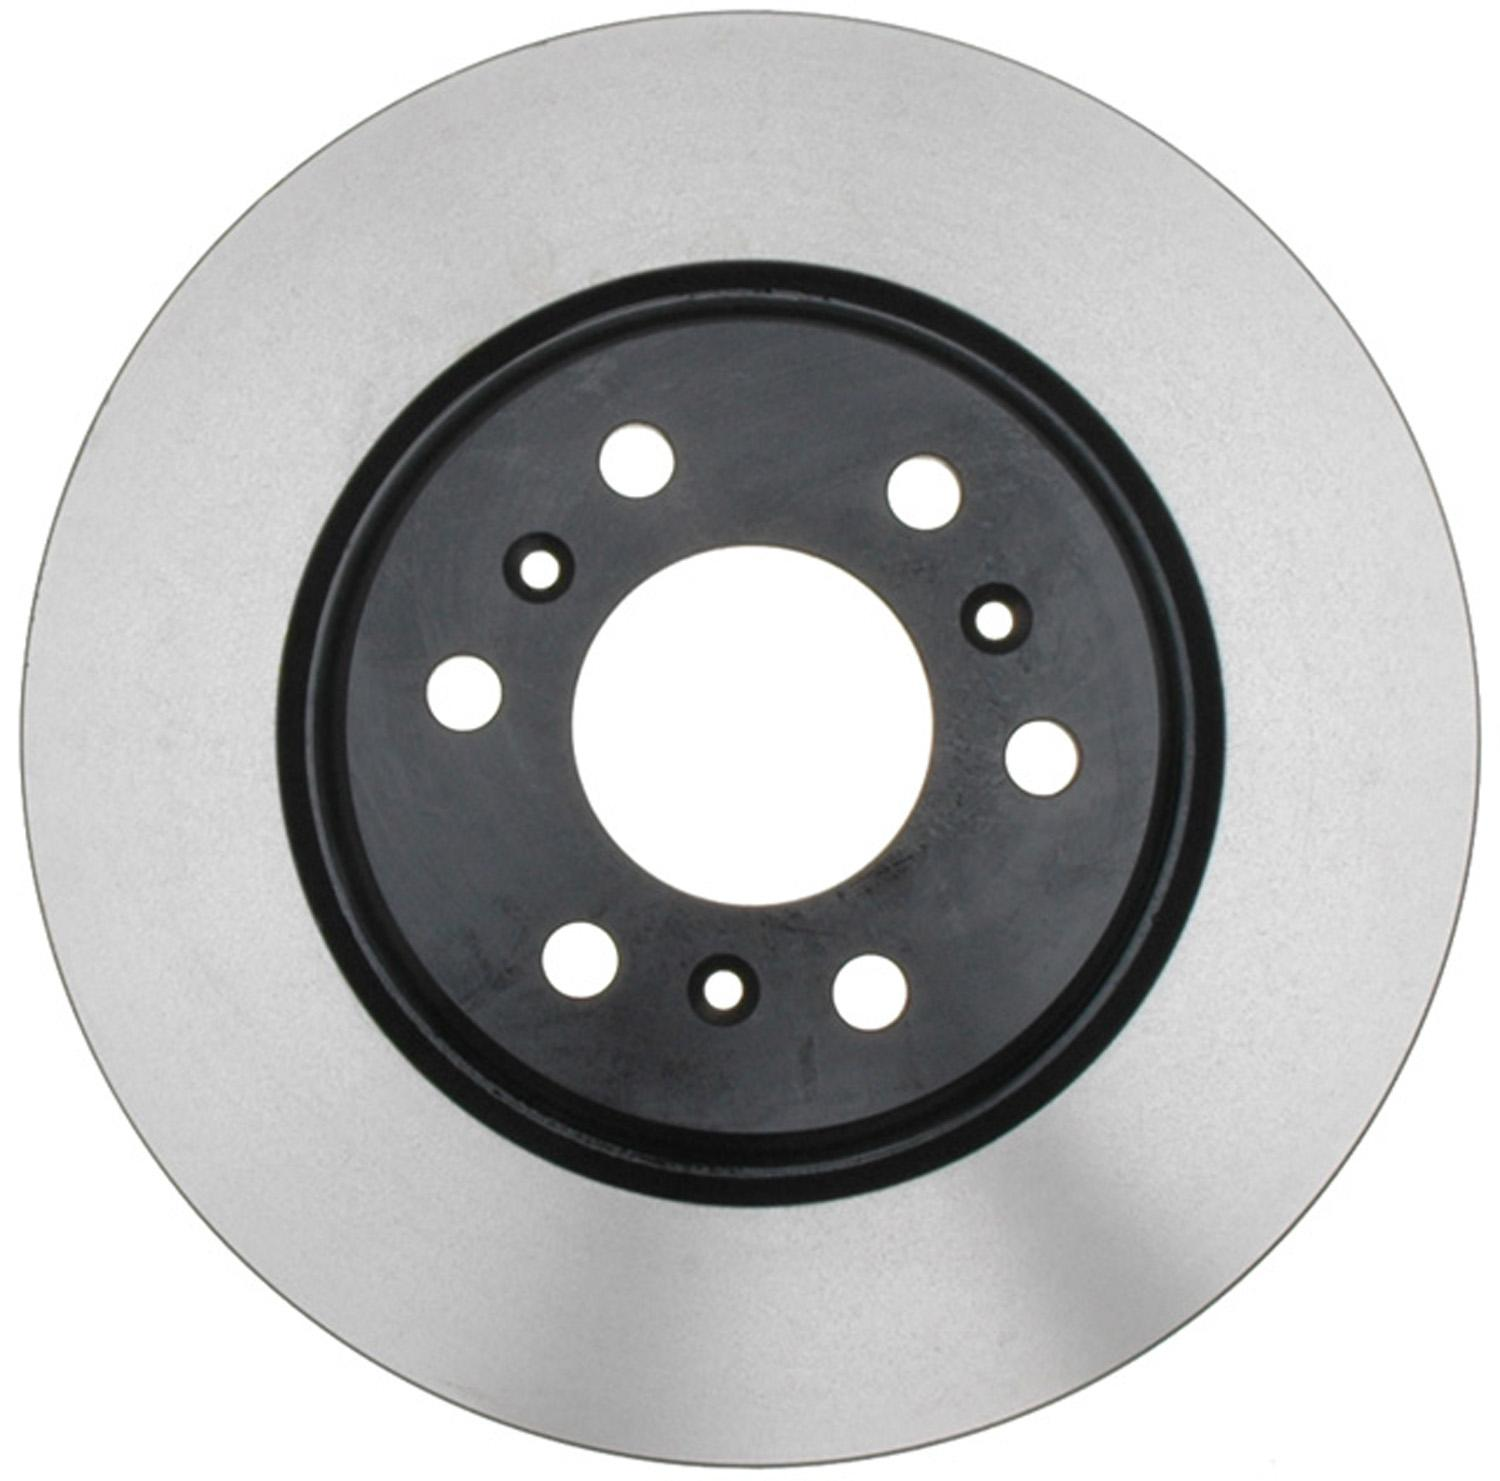 ACDELCO GOLD/PROFESSIONAL BRAKES - Black Hat (Front) - ADU 18A2349